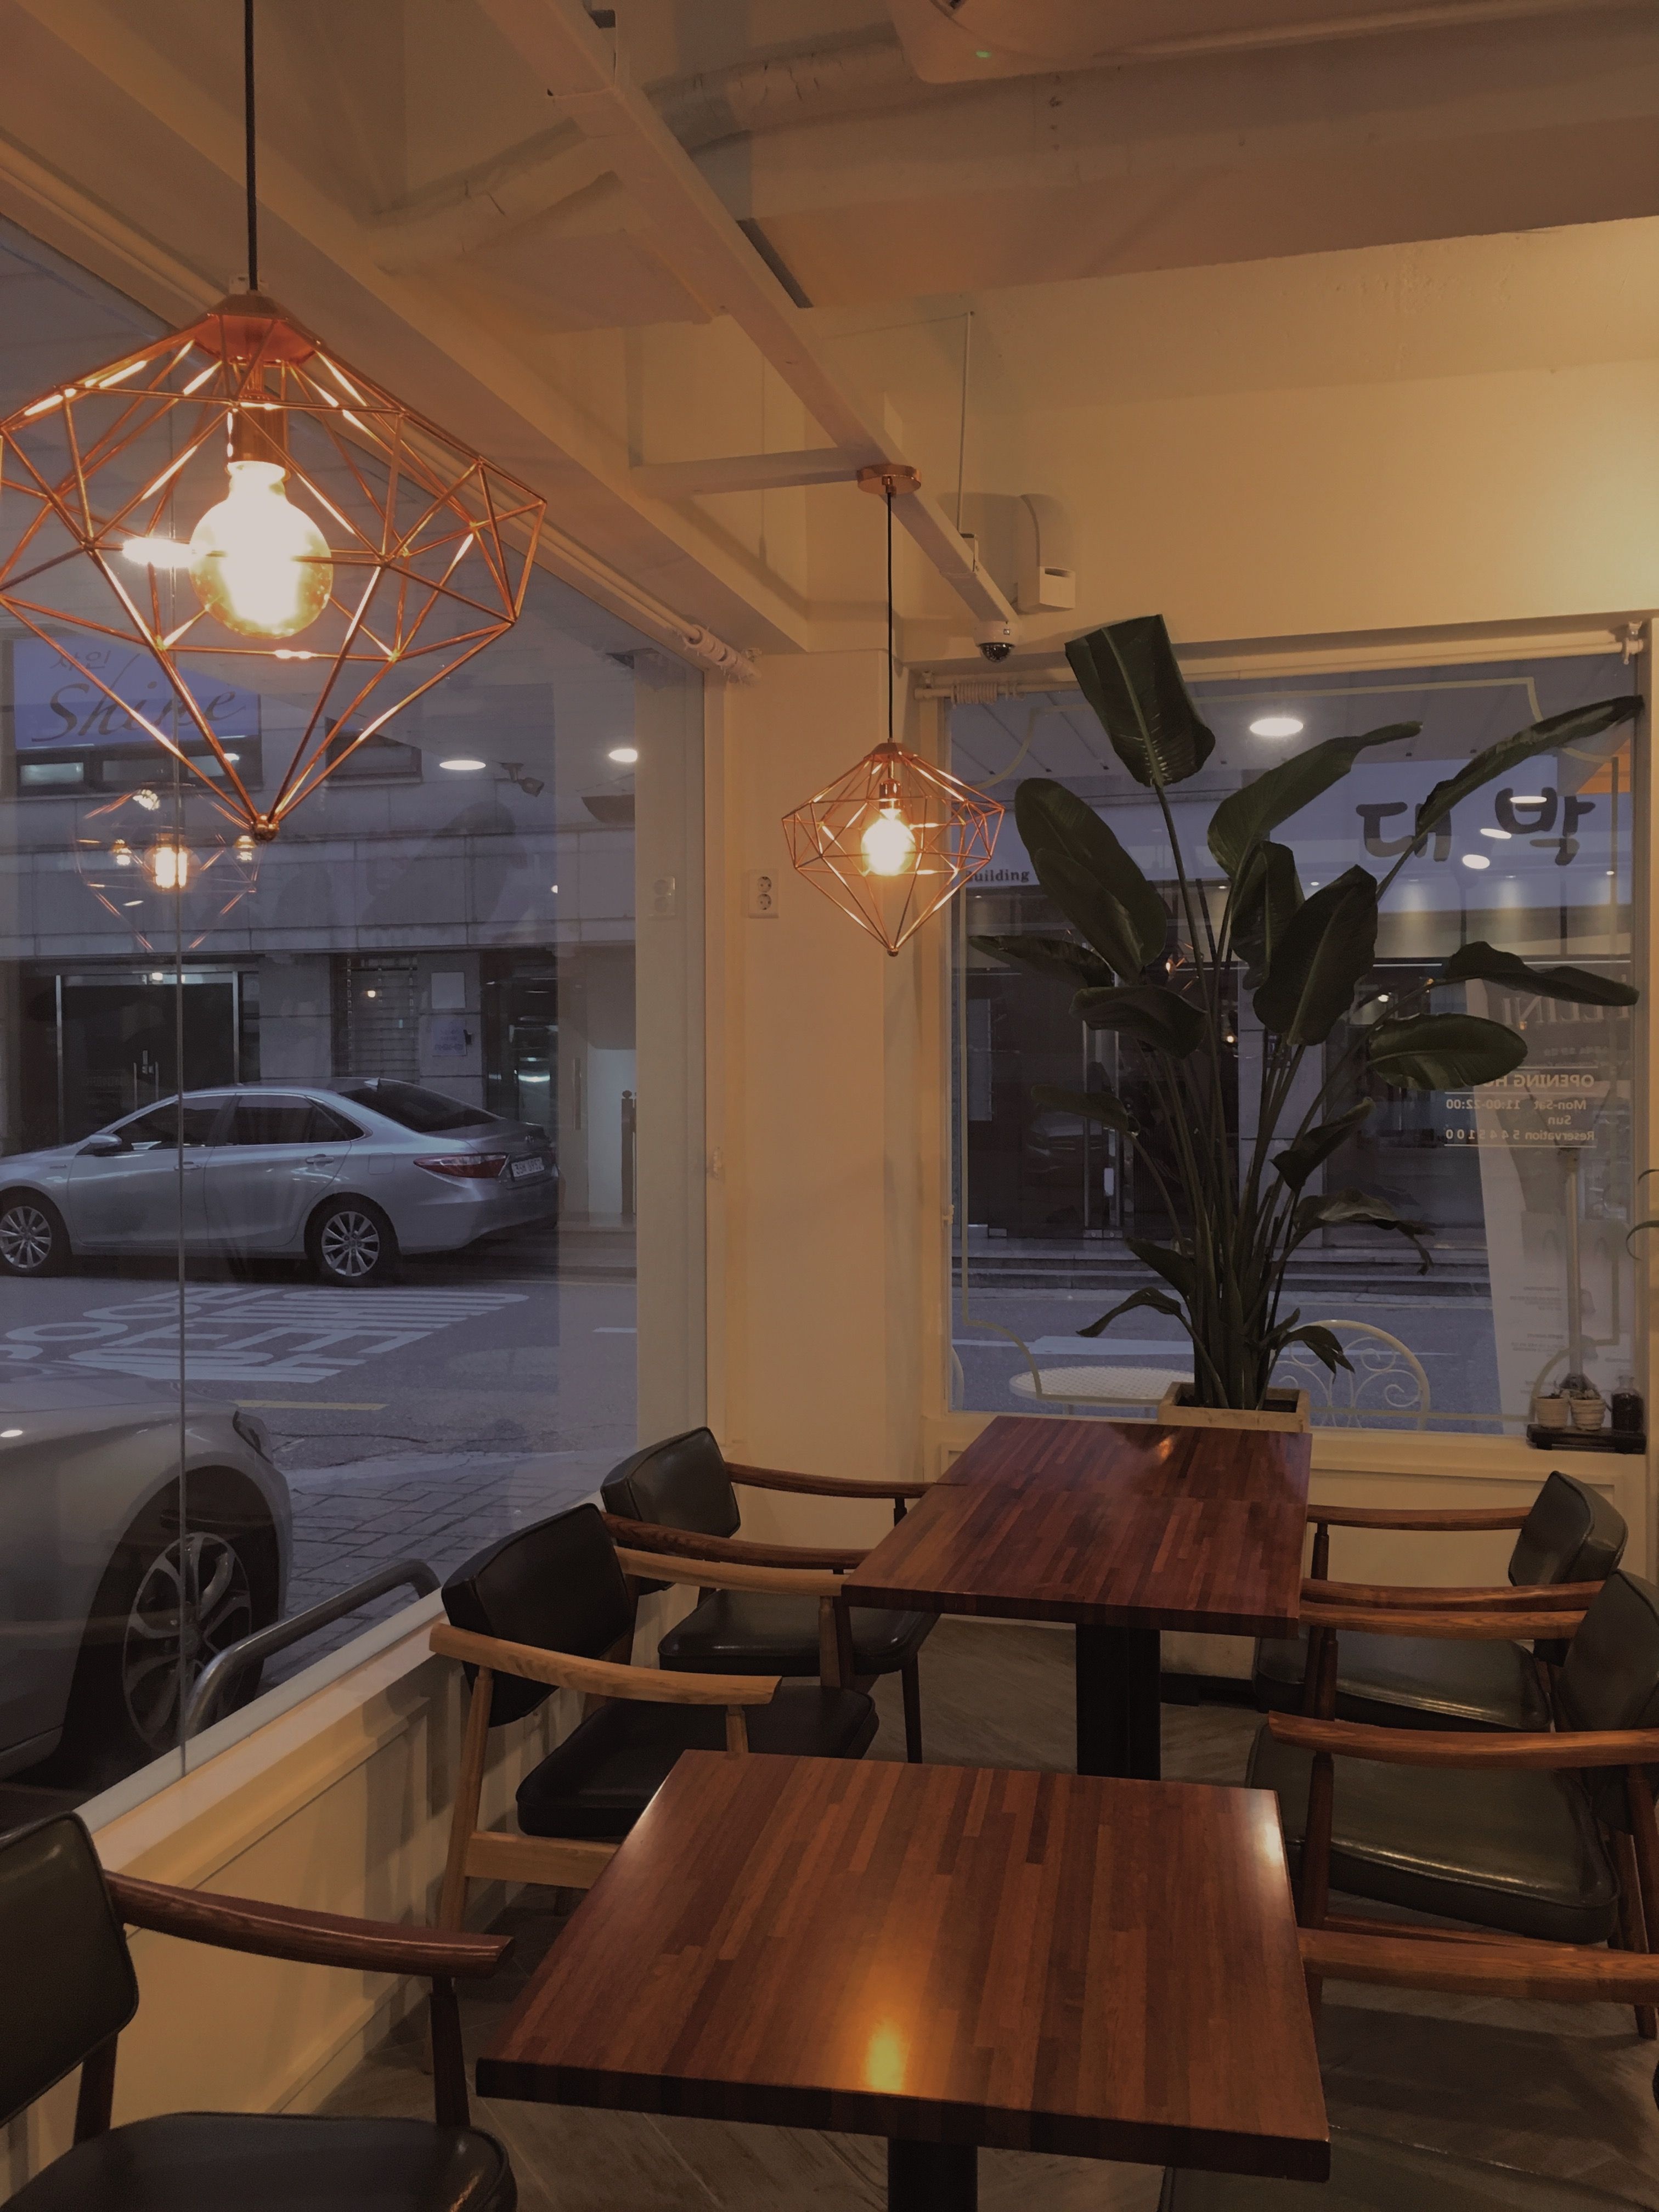 Seoul Coffeeshop Coffee Cafe Interiors Korea Evening Warm Aesthetic Cafe Interior Seoul Cafe Coffee Shop Aesthetic